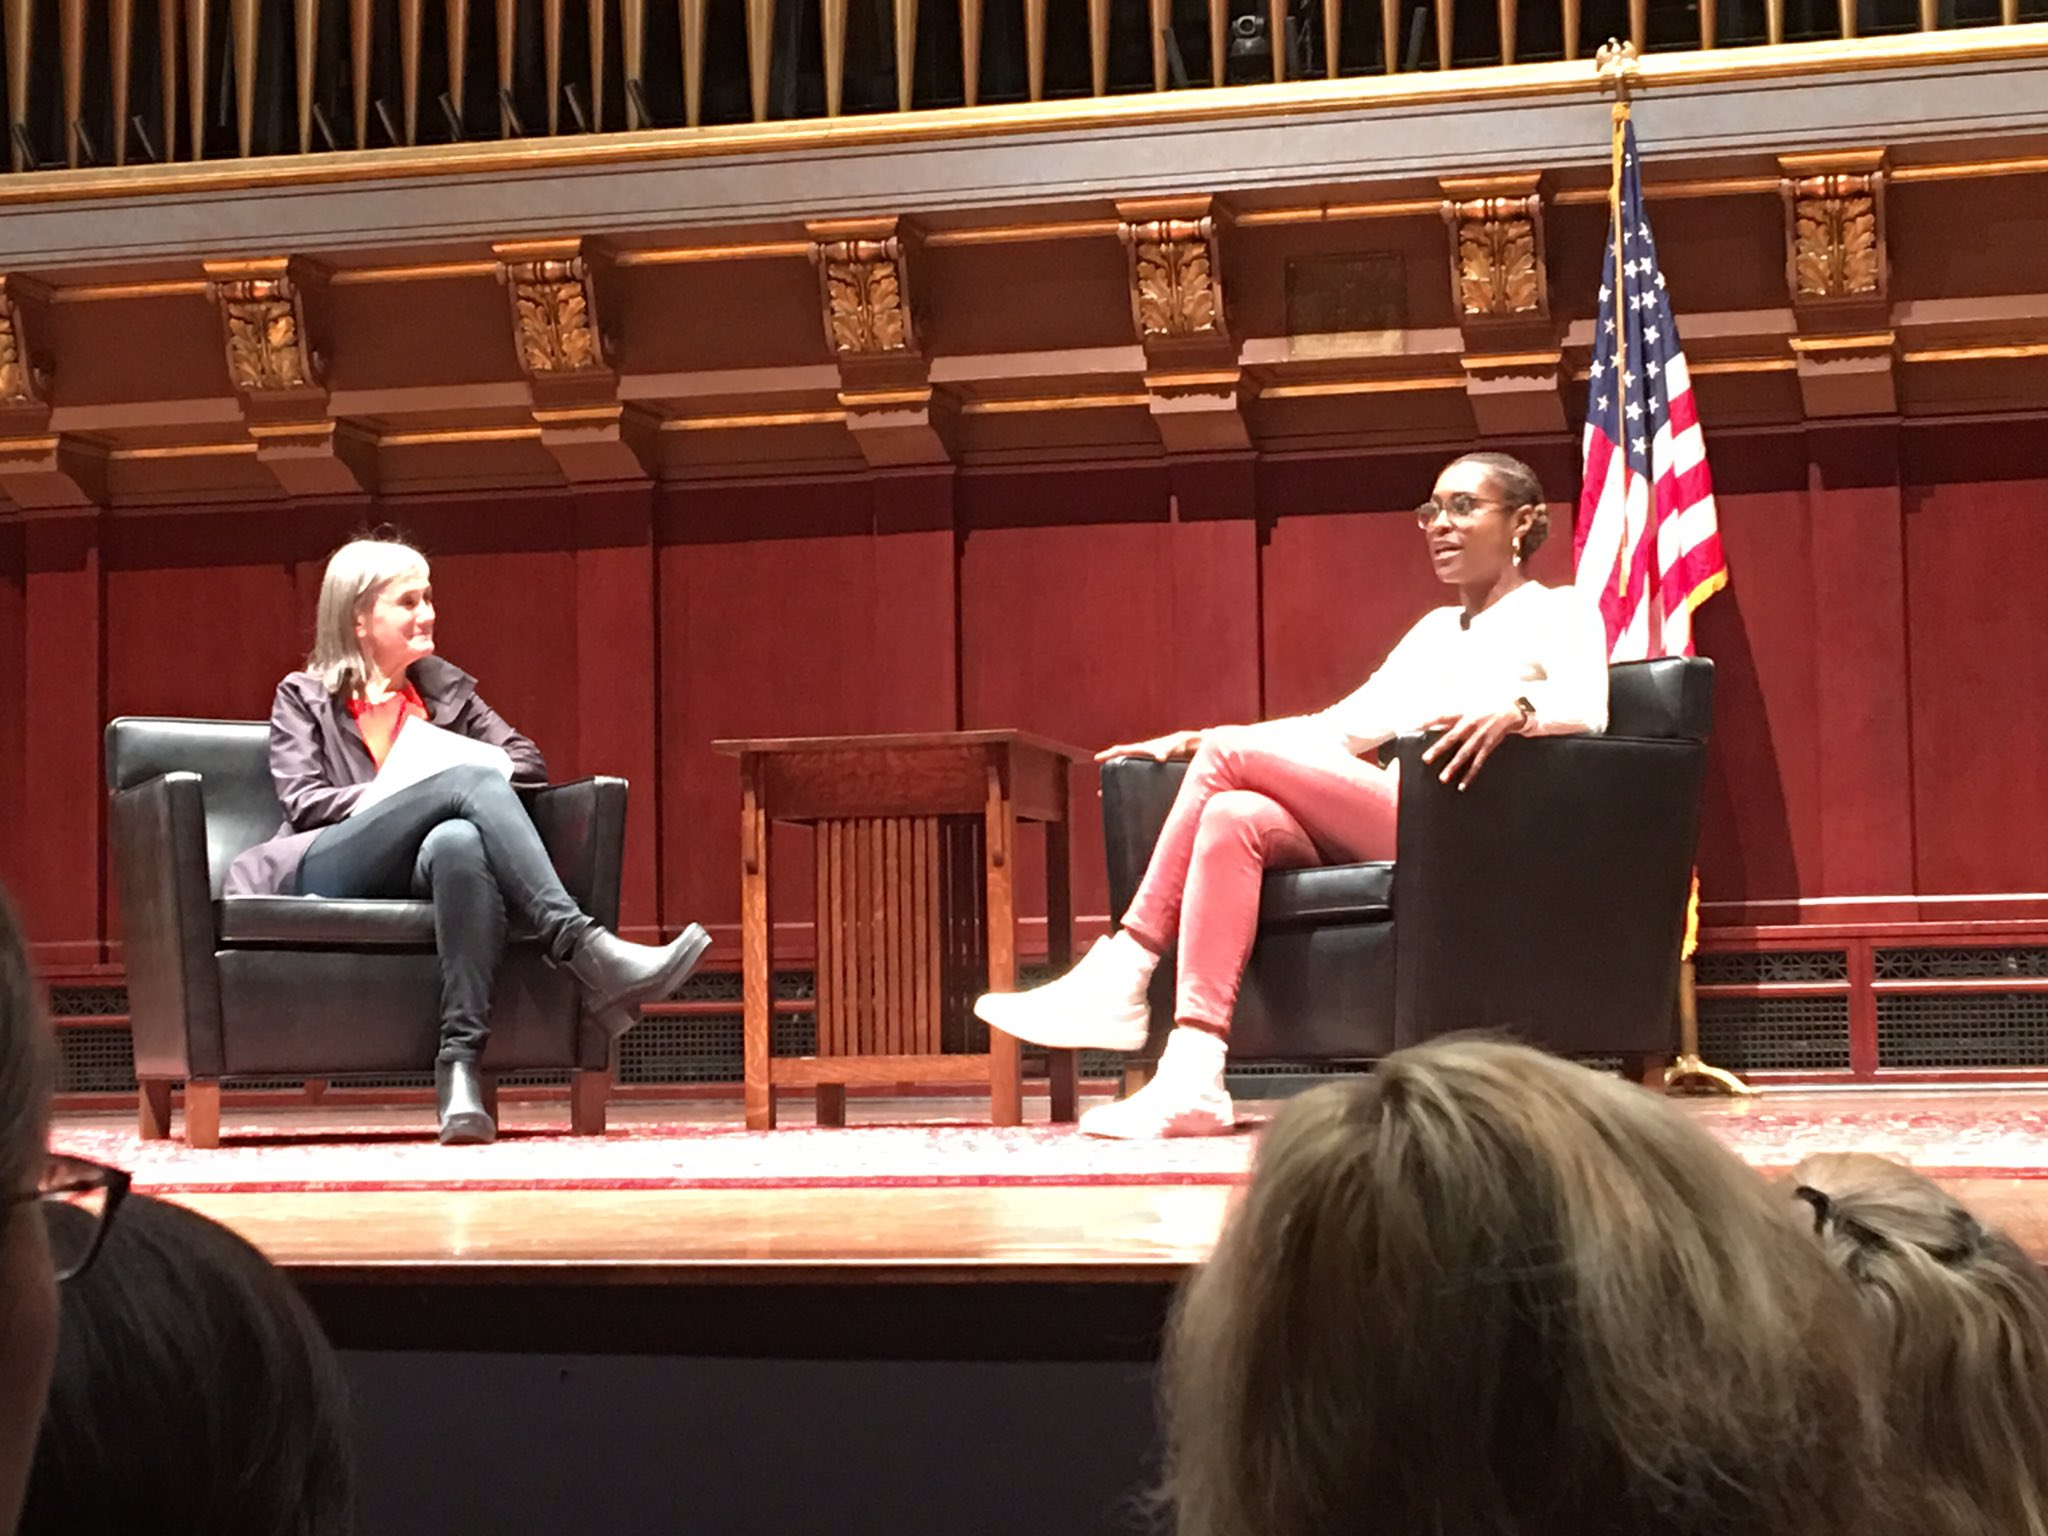 Issa Rae being interviewed by the legendary Amy Goodman ...#UMichMLKDay2017 #MLKDAY https://t.co/Yxrn8cD2L7